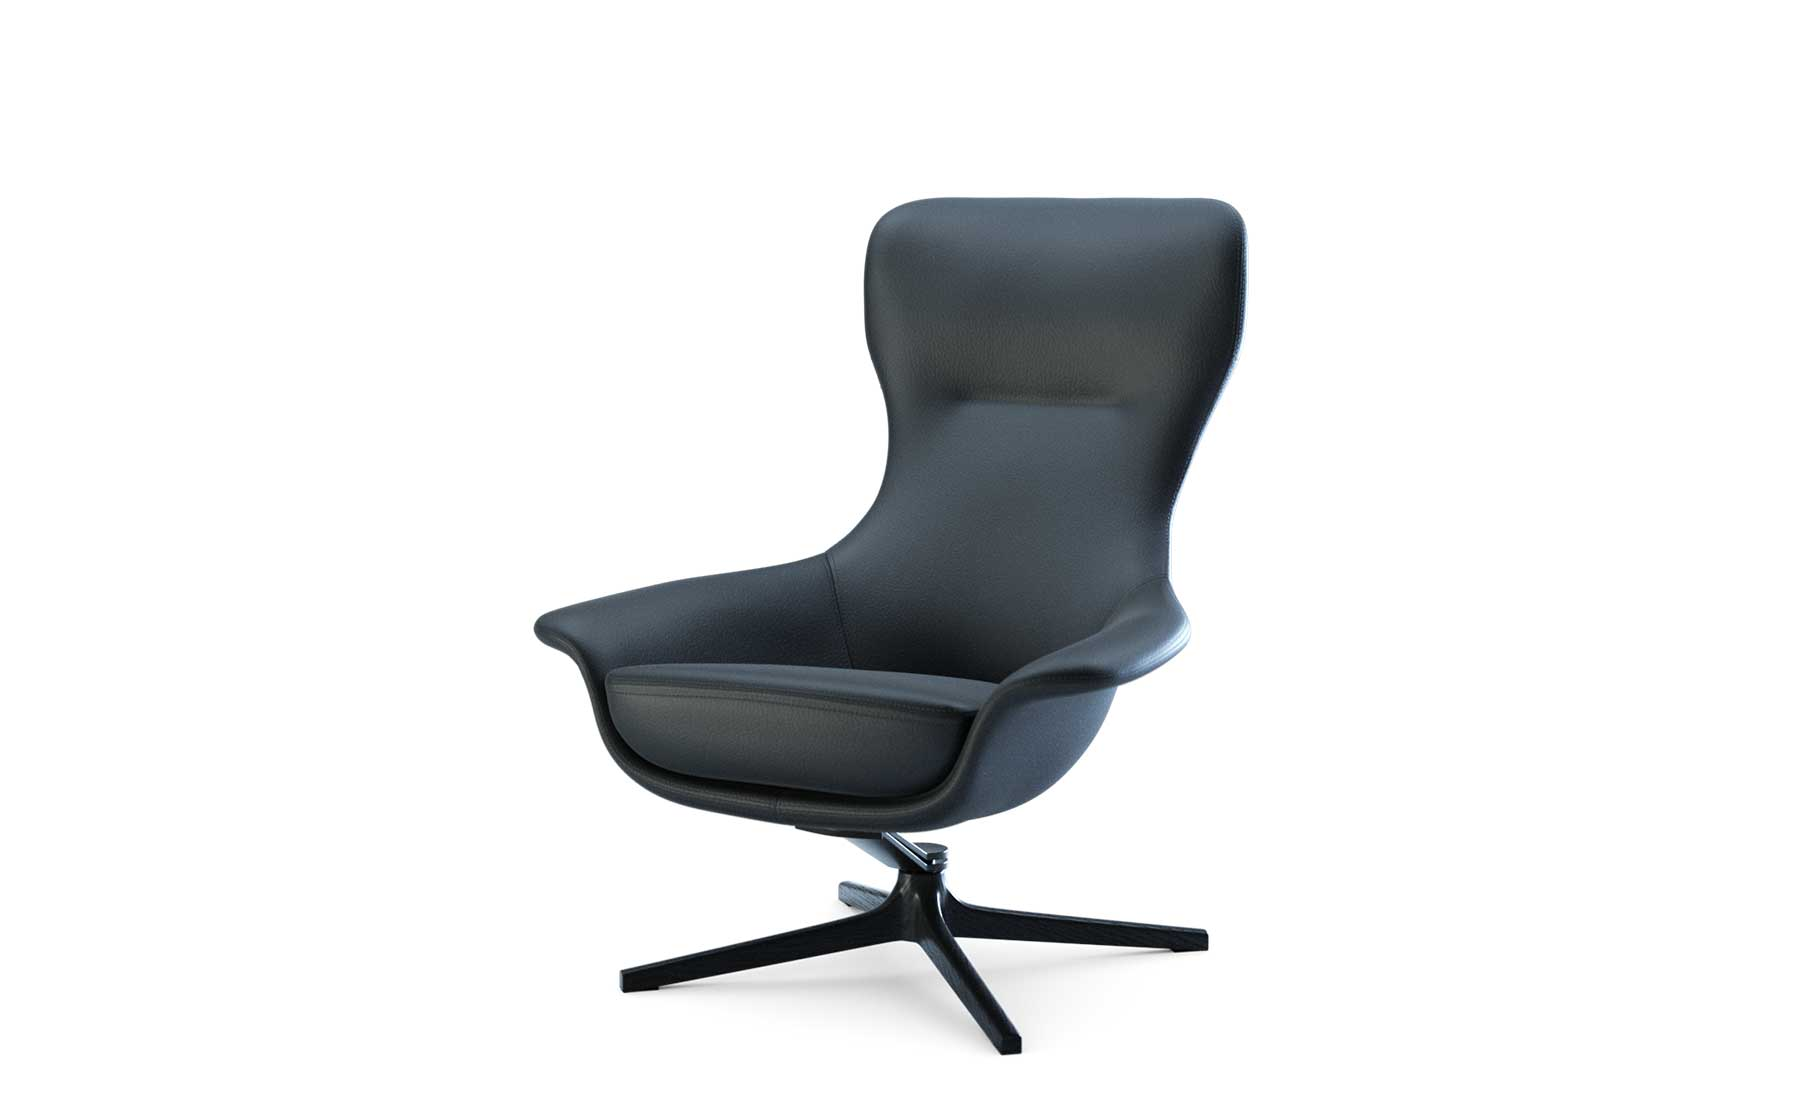 swivel chair king living padded folding chairs with arms seymour designed in collaboration charles wilson armchair ottoman